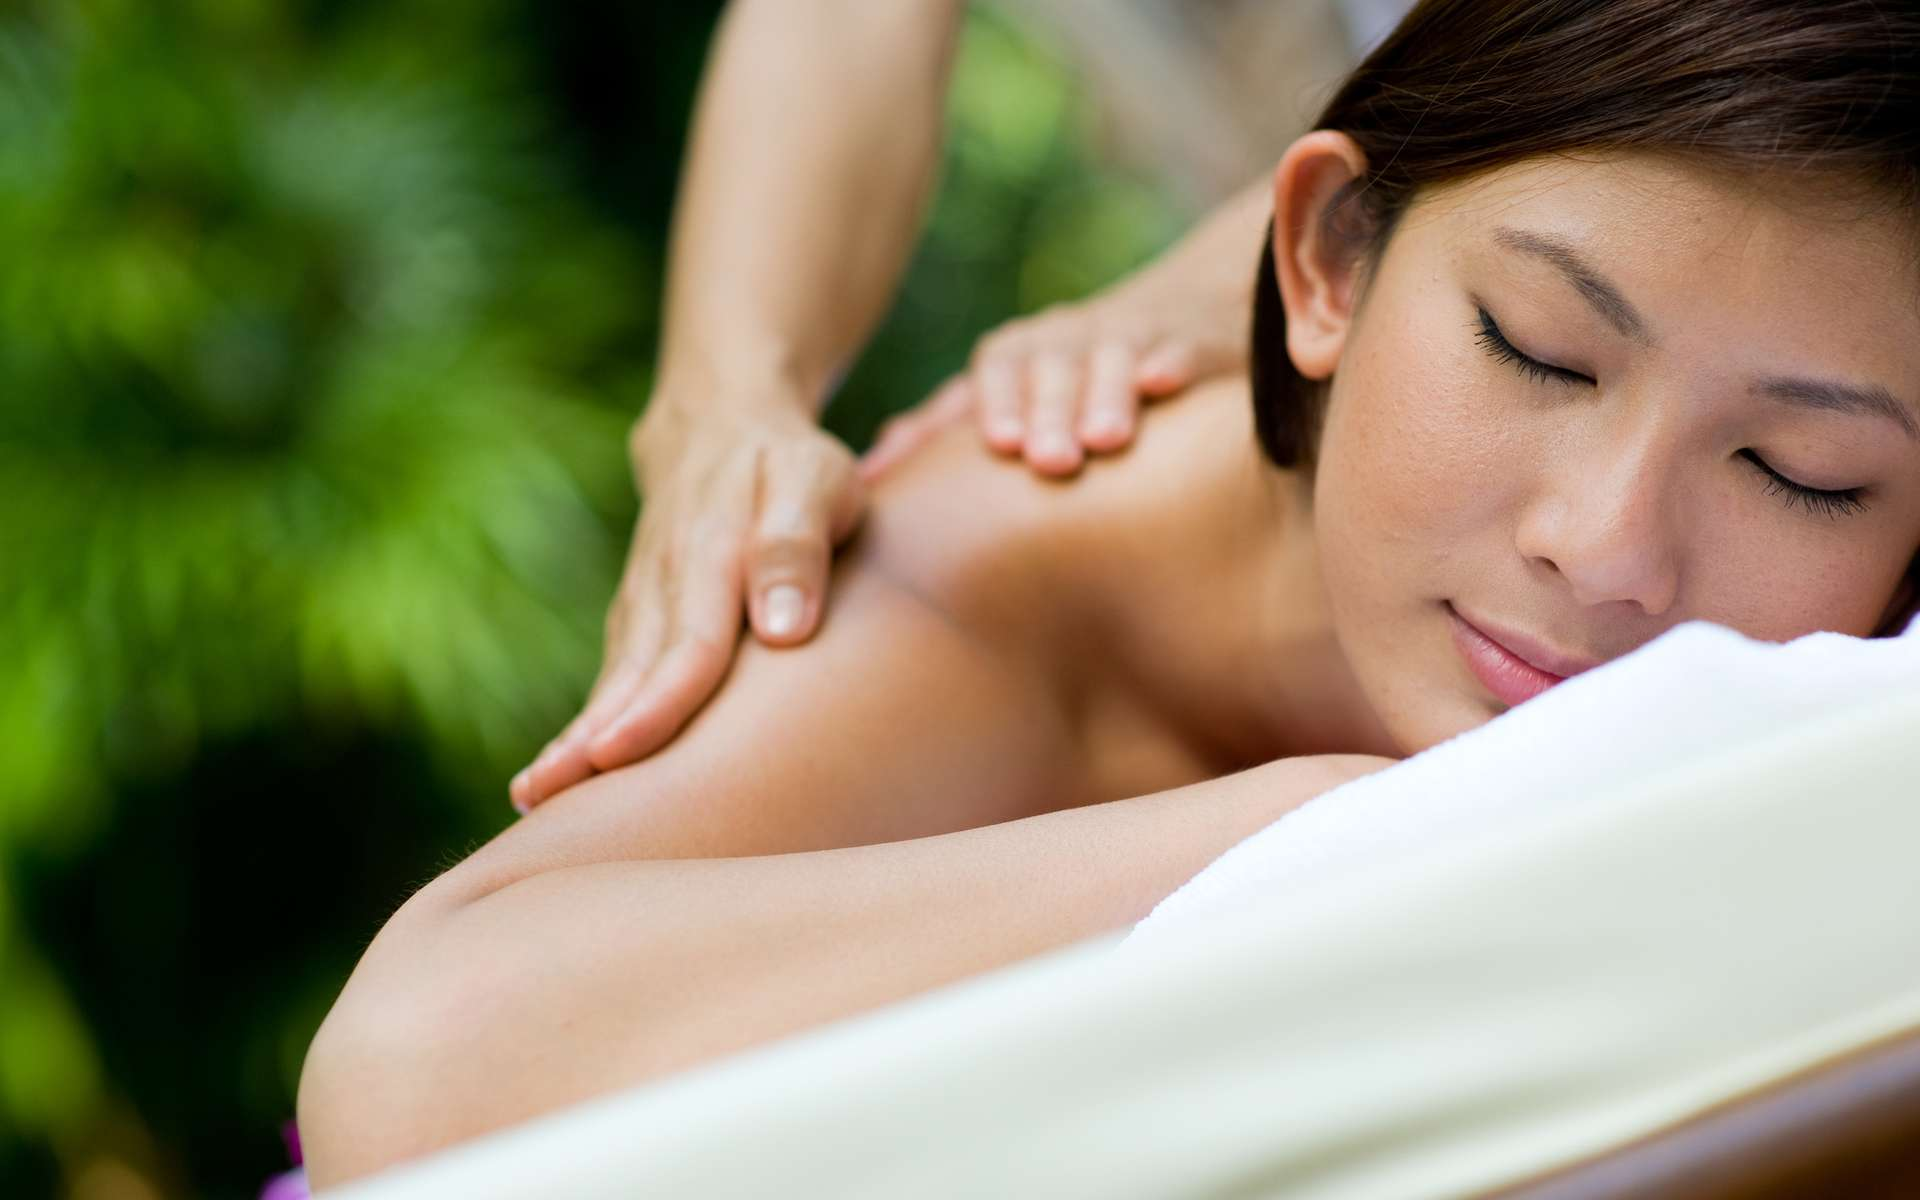 Le massage, une solution au stress quotidien. © EastWest Imaging – Fotolia